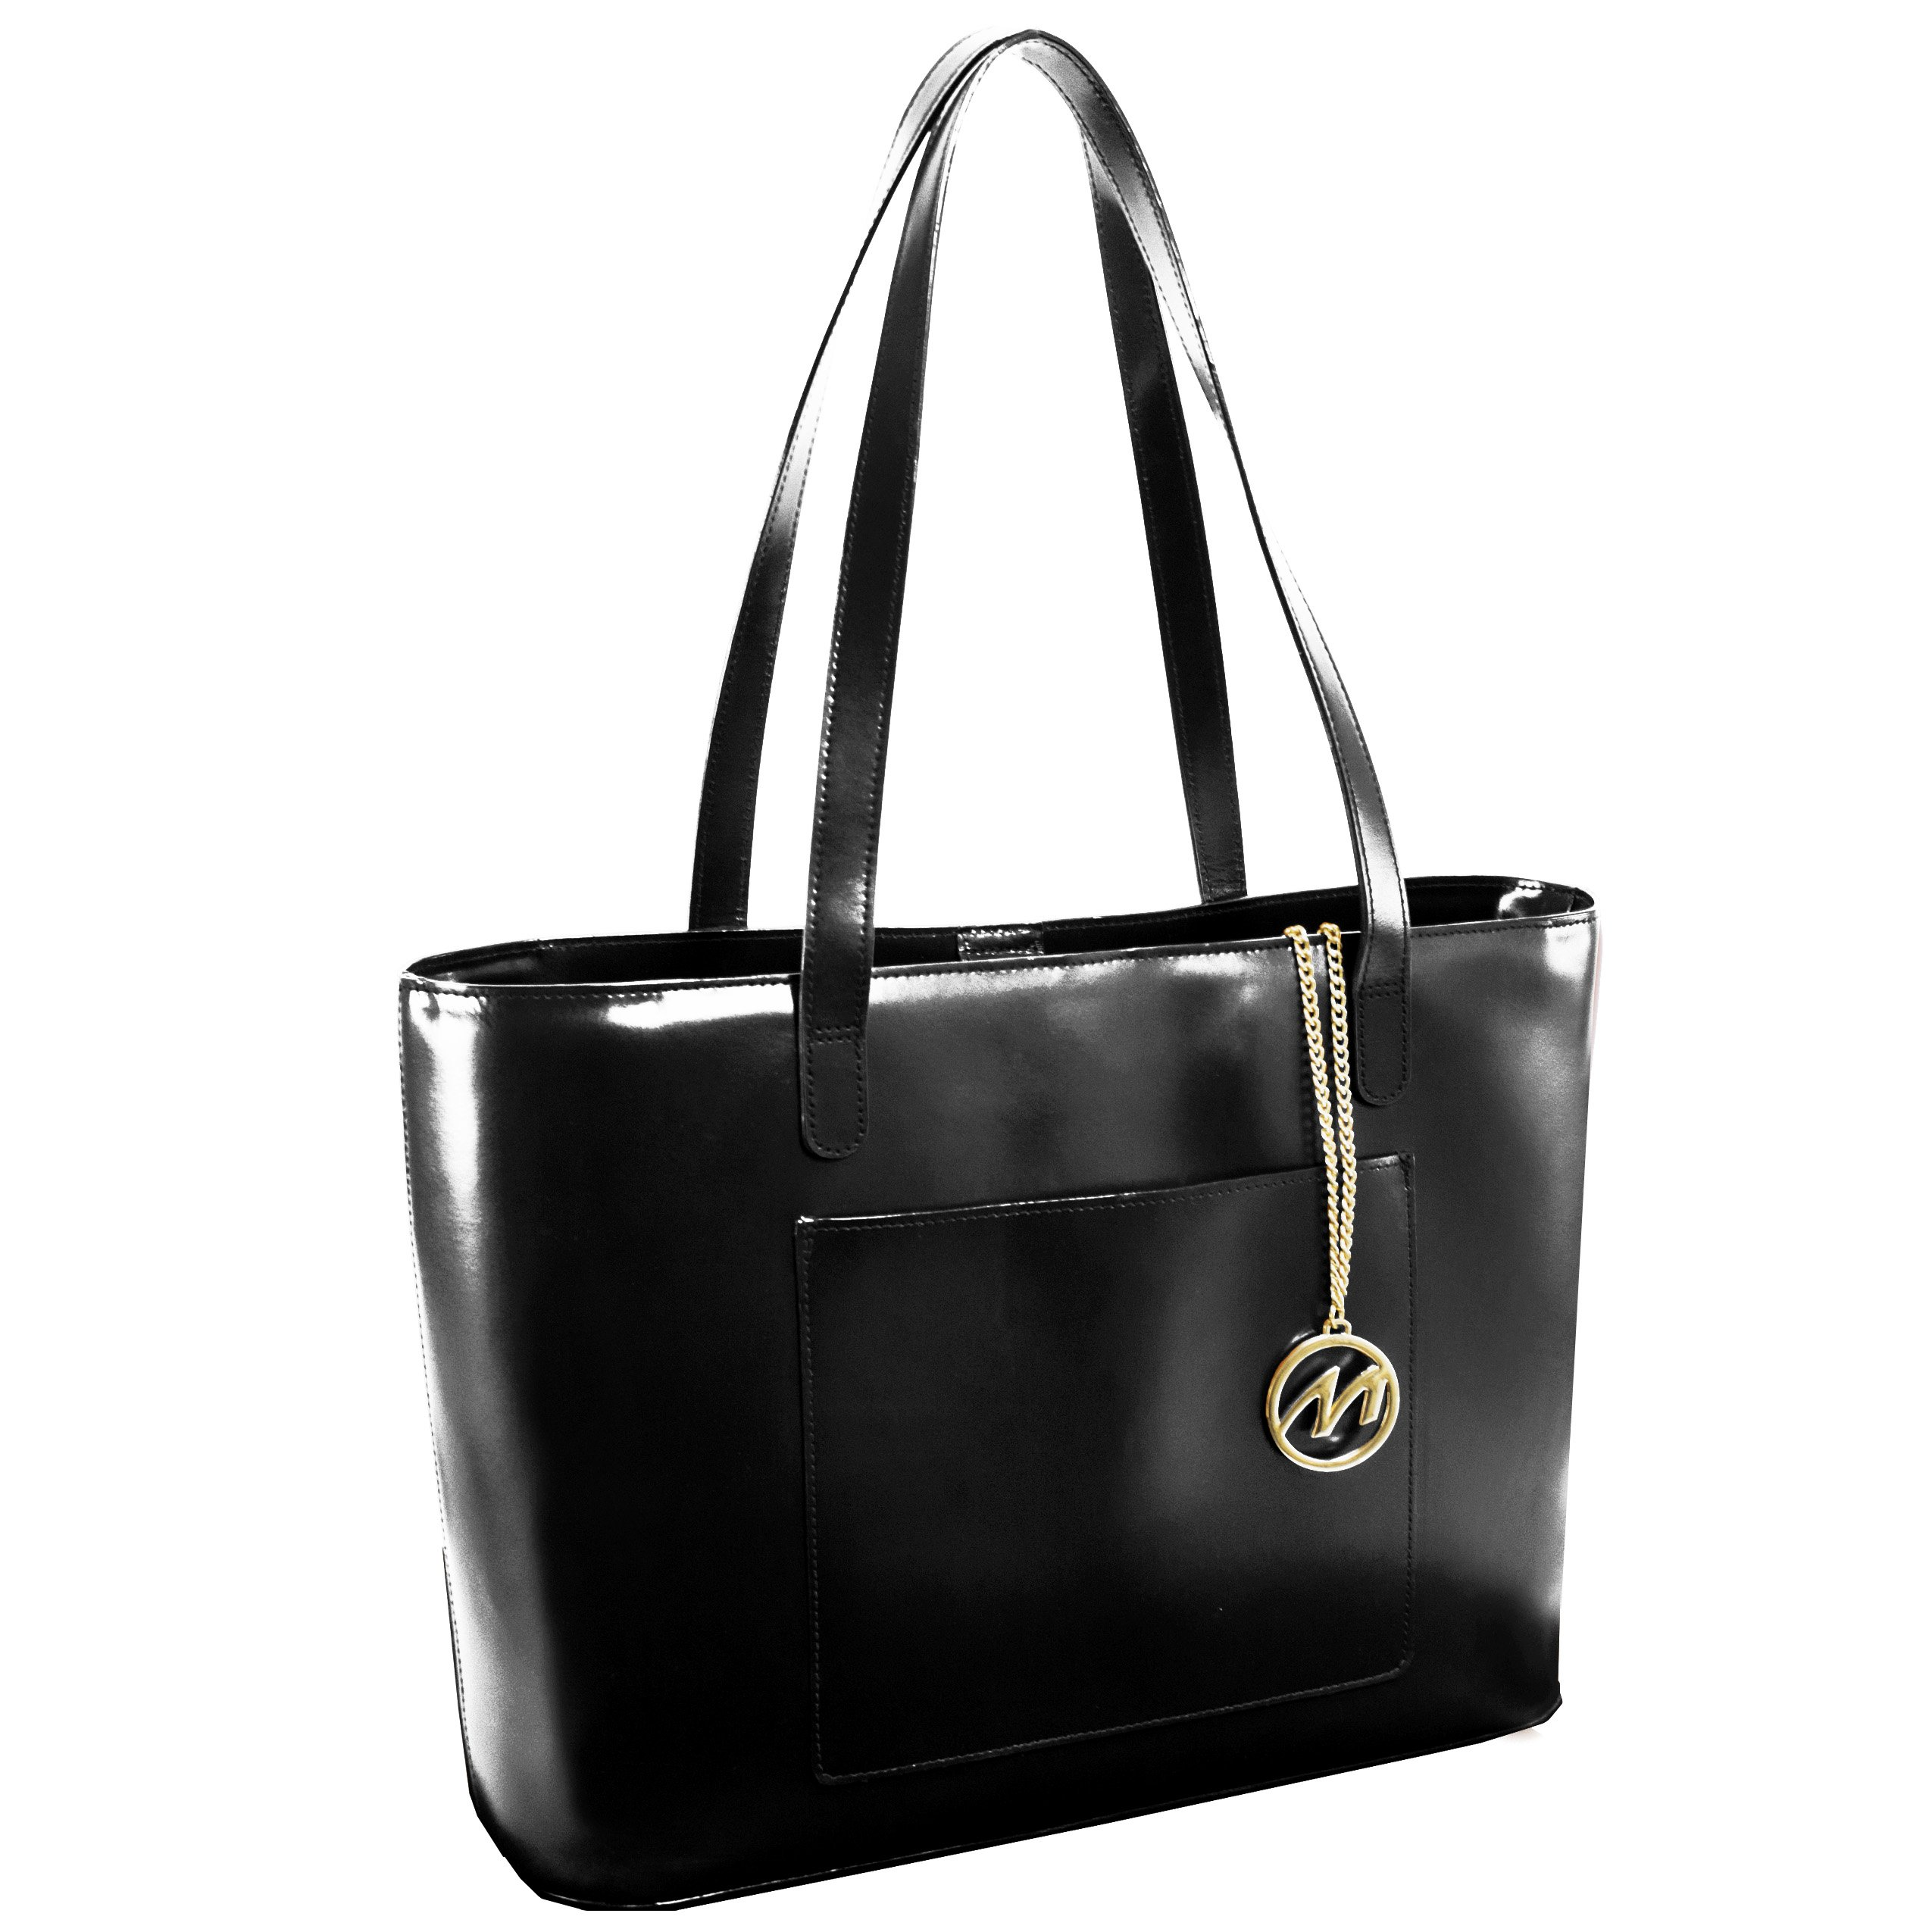 McKleinUSA Alyson [Personalized Initials Embossing] Leather Ladies' Tote with Tablet Pocket in Black by McKlein